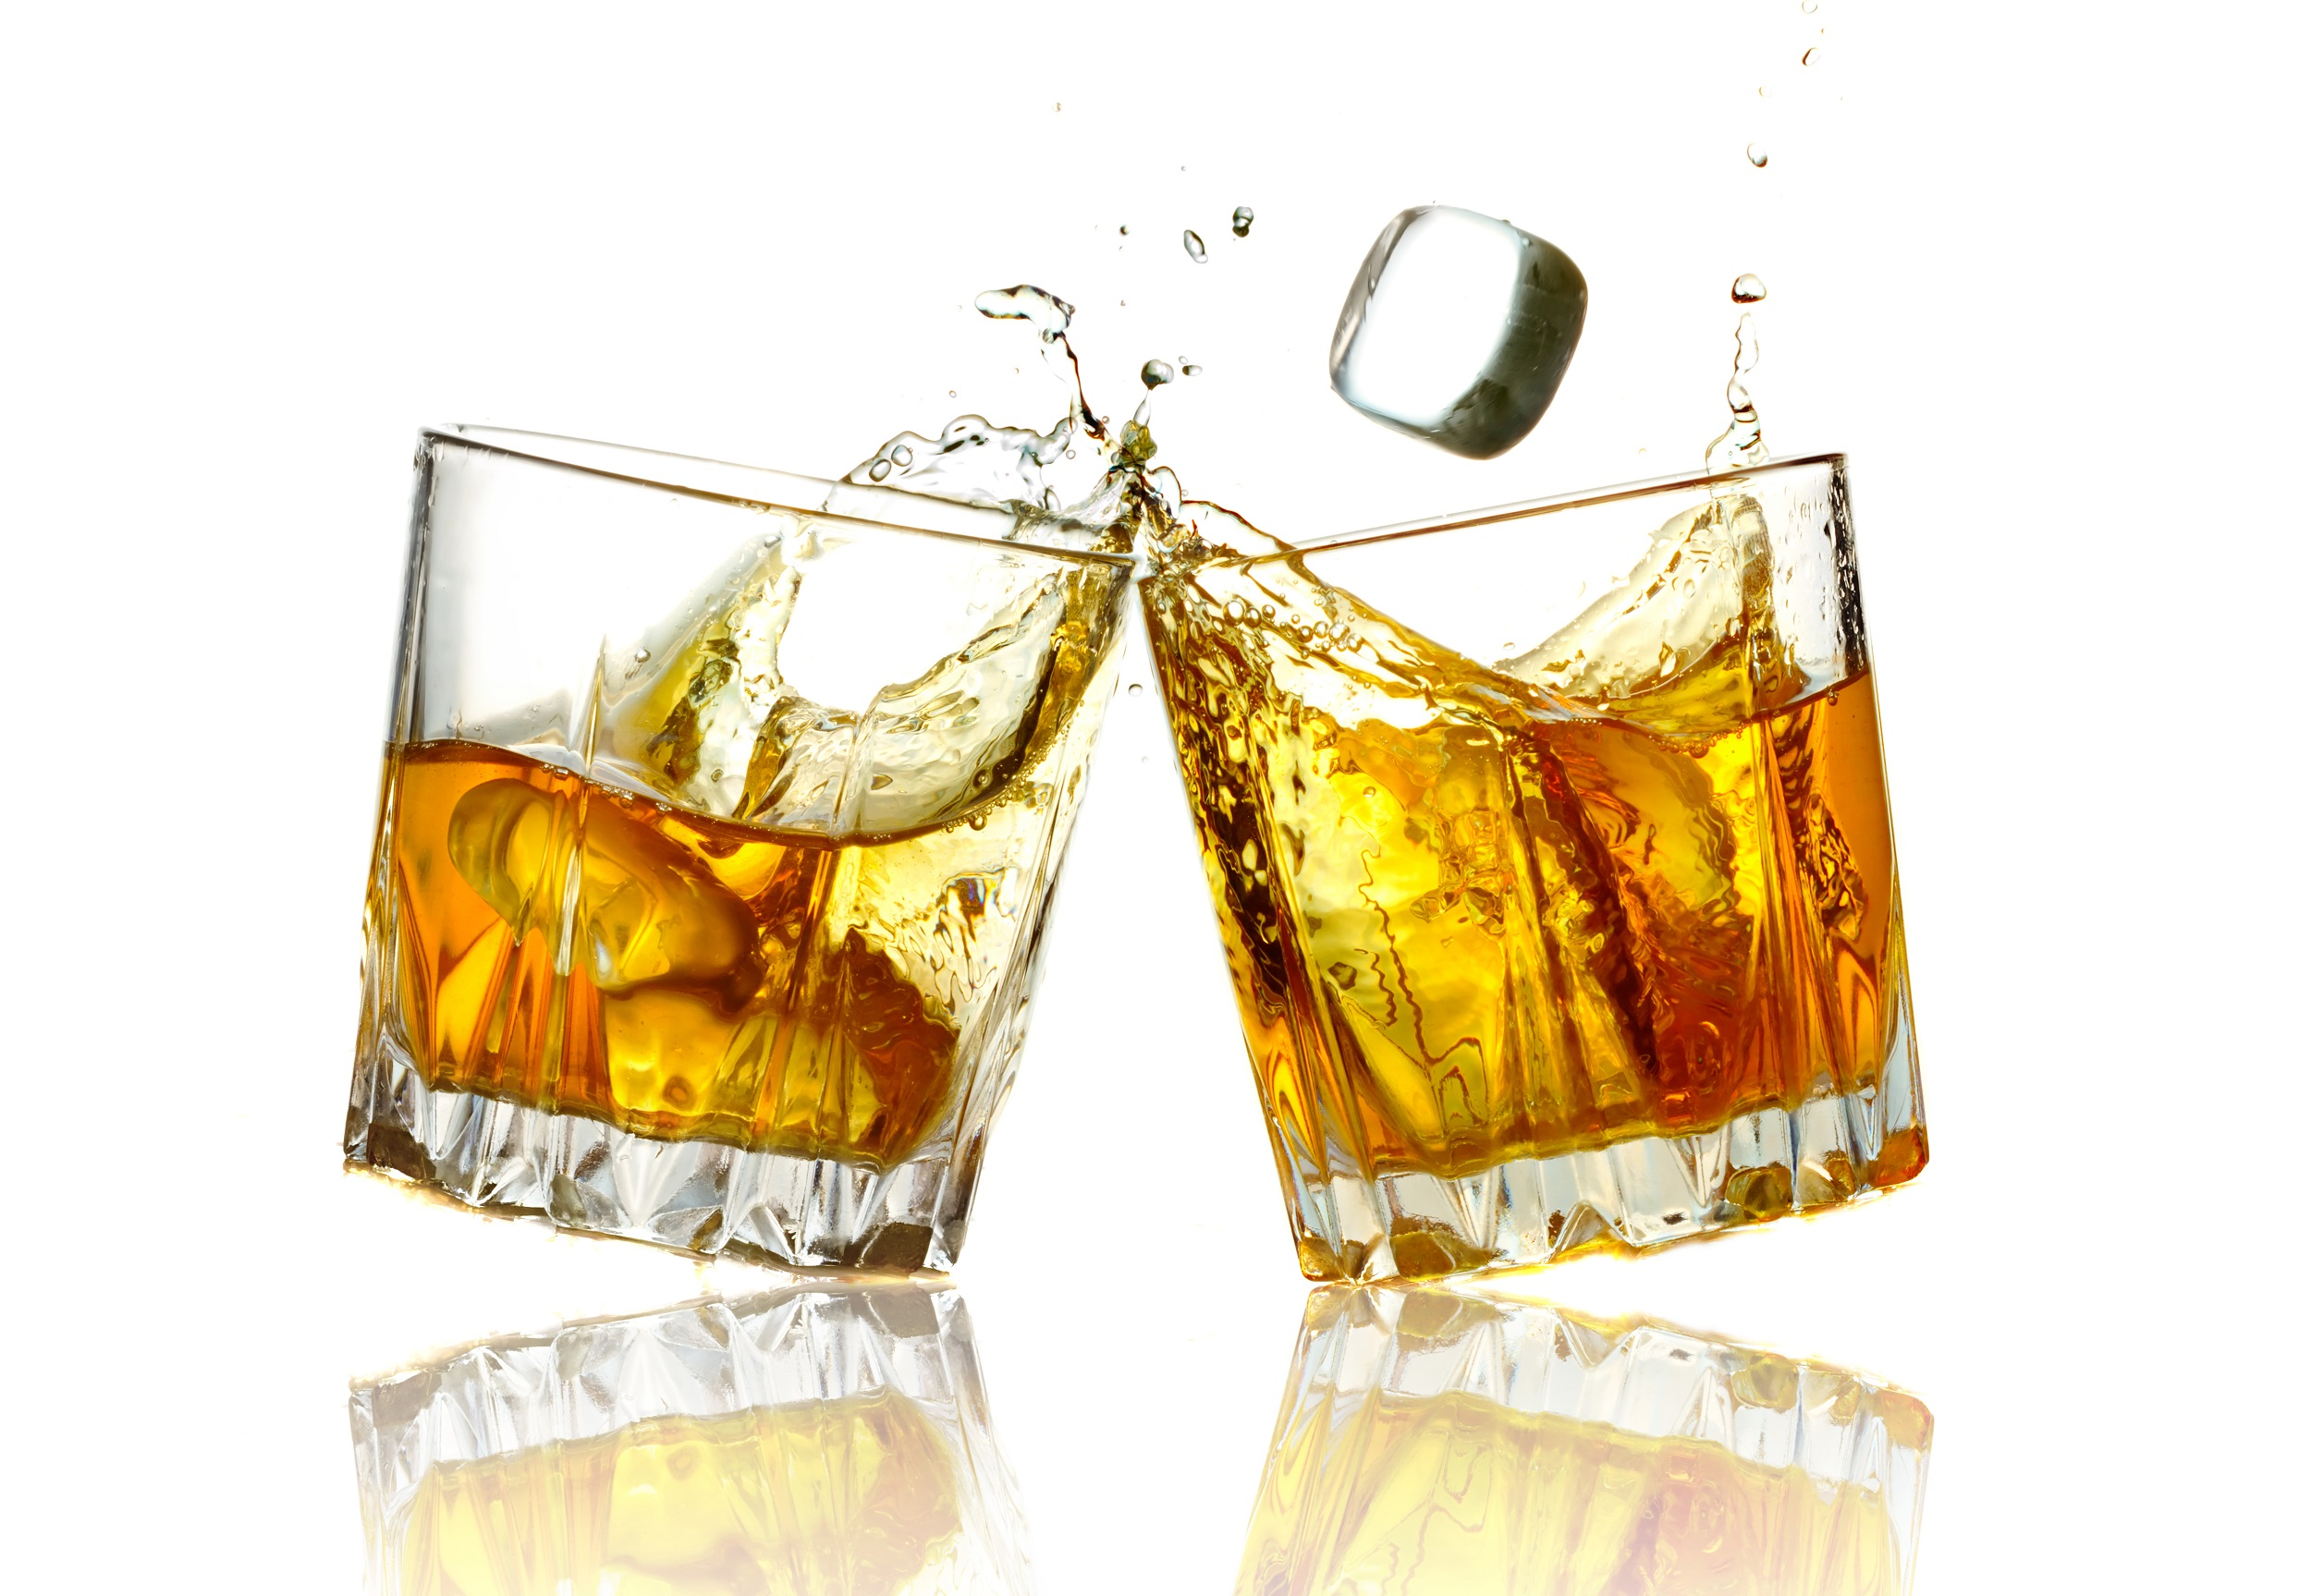 Two whiskey glasses clinking together, isolated 2